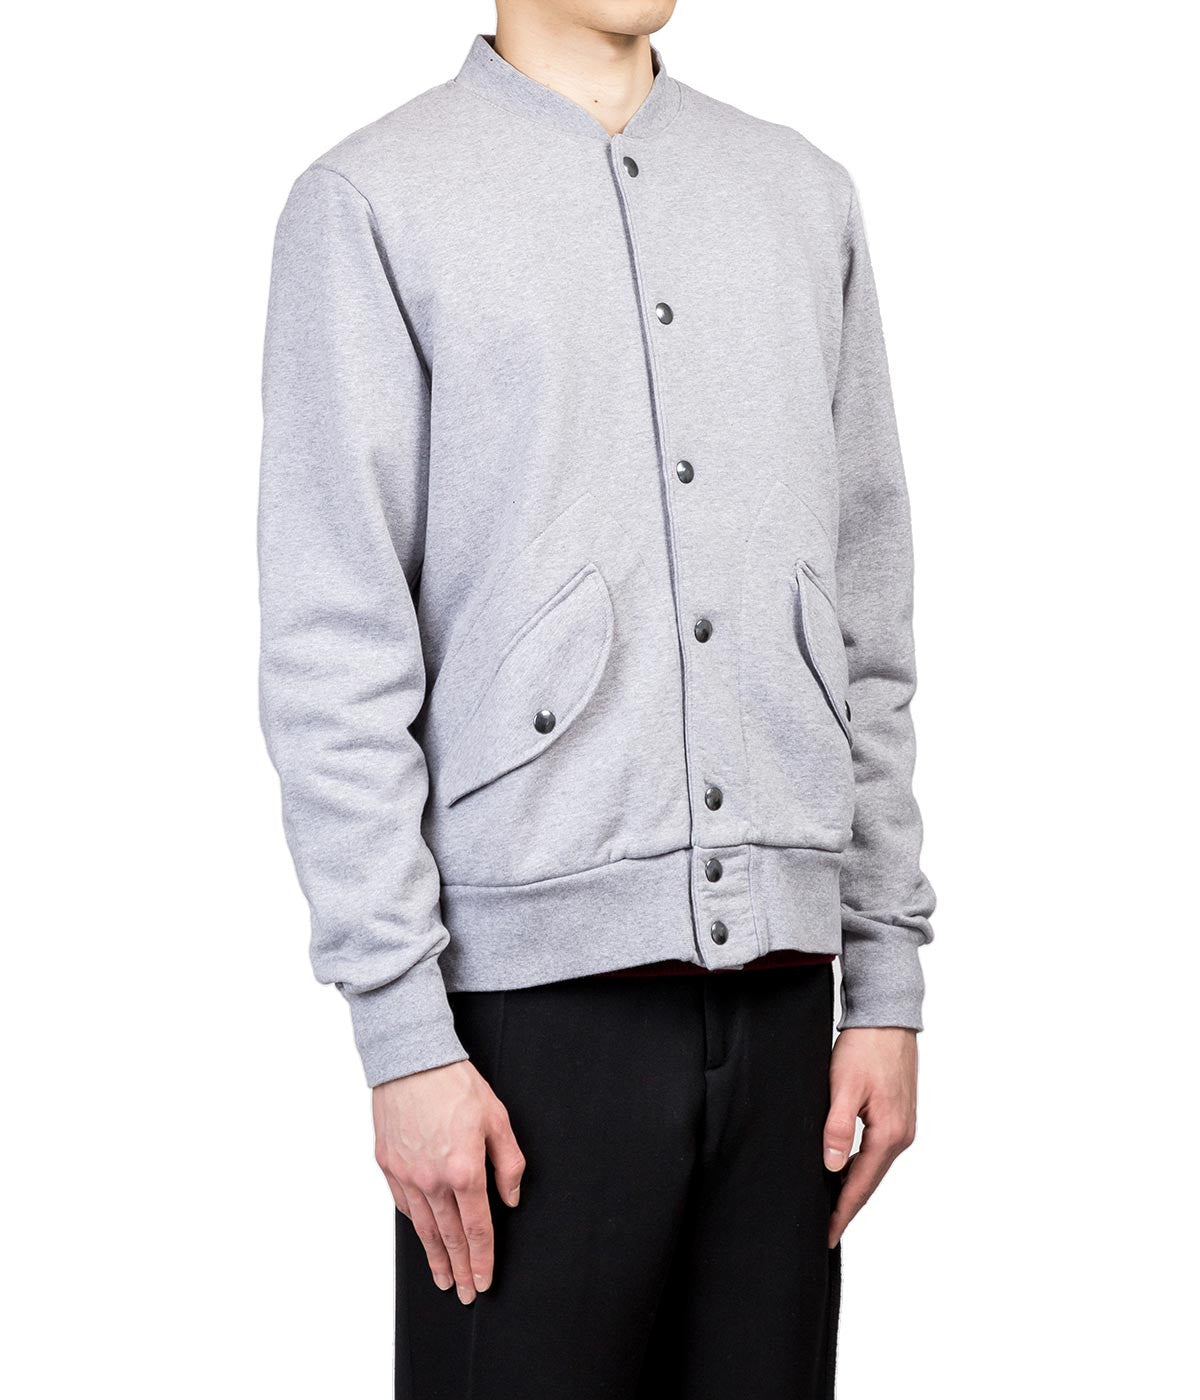 Grey 'OUR ENEMIES' Bomber Jacket